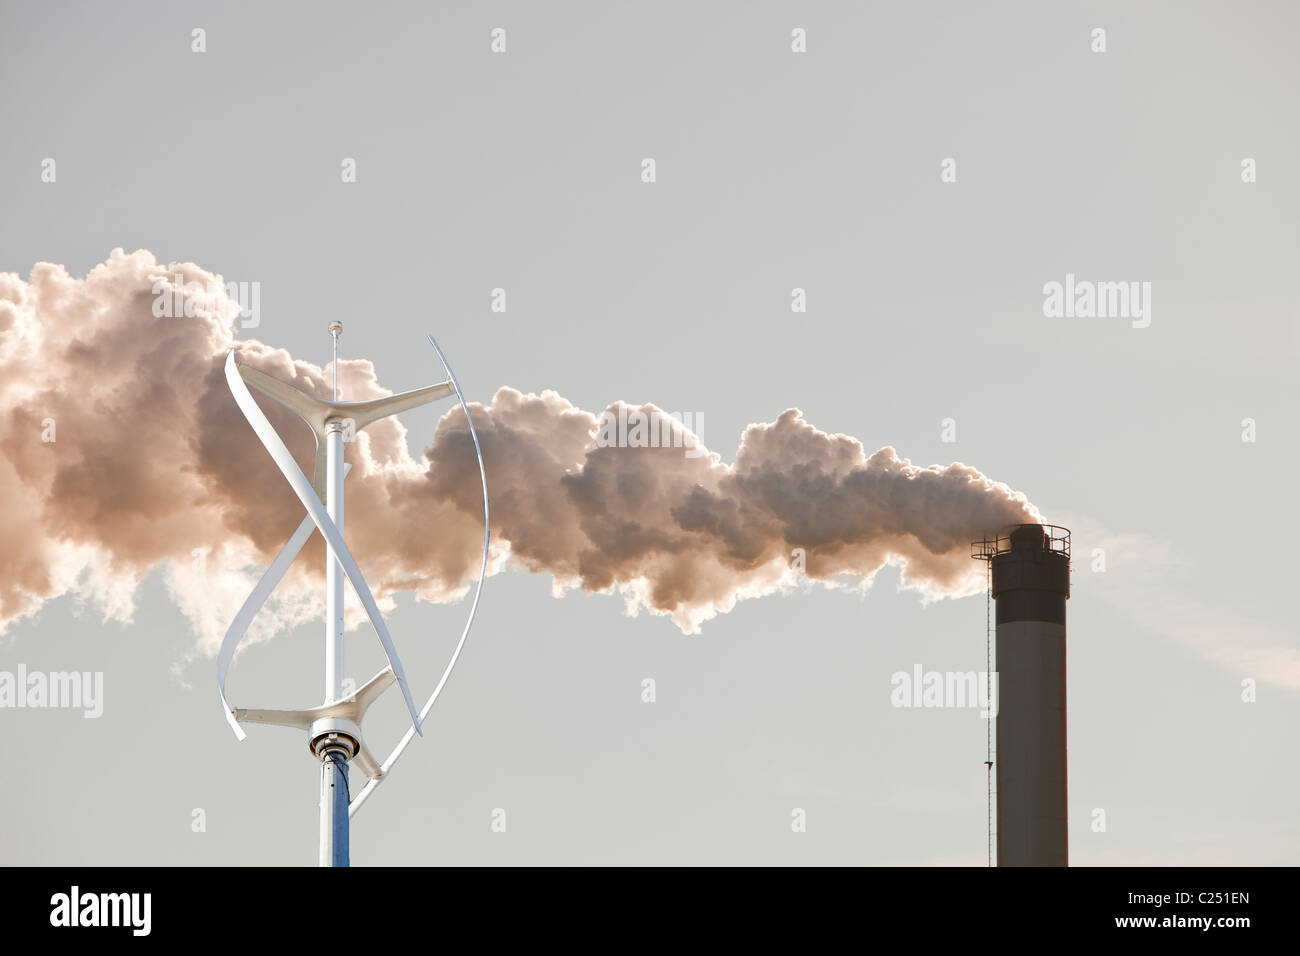 Emissions from Huntsman Tioxide works at Seal Sands on Teeside, North East, UK. - Stock Image